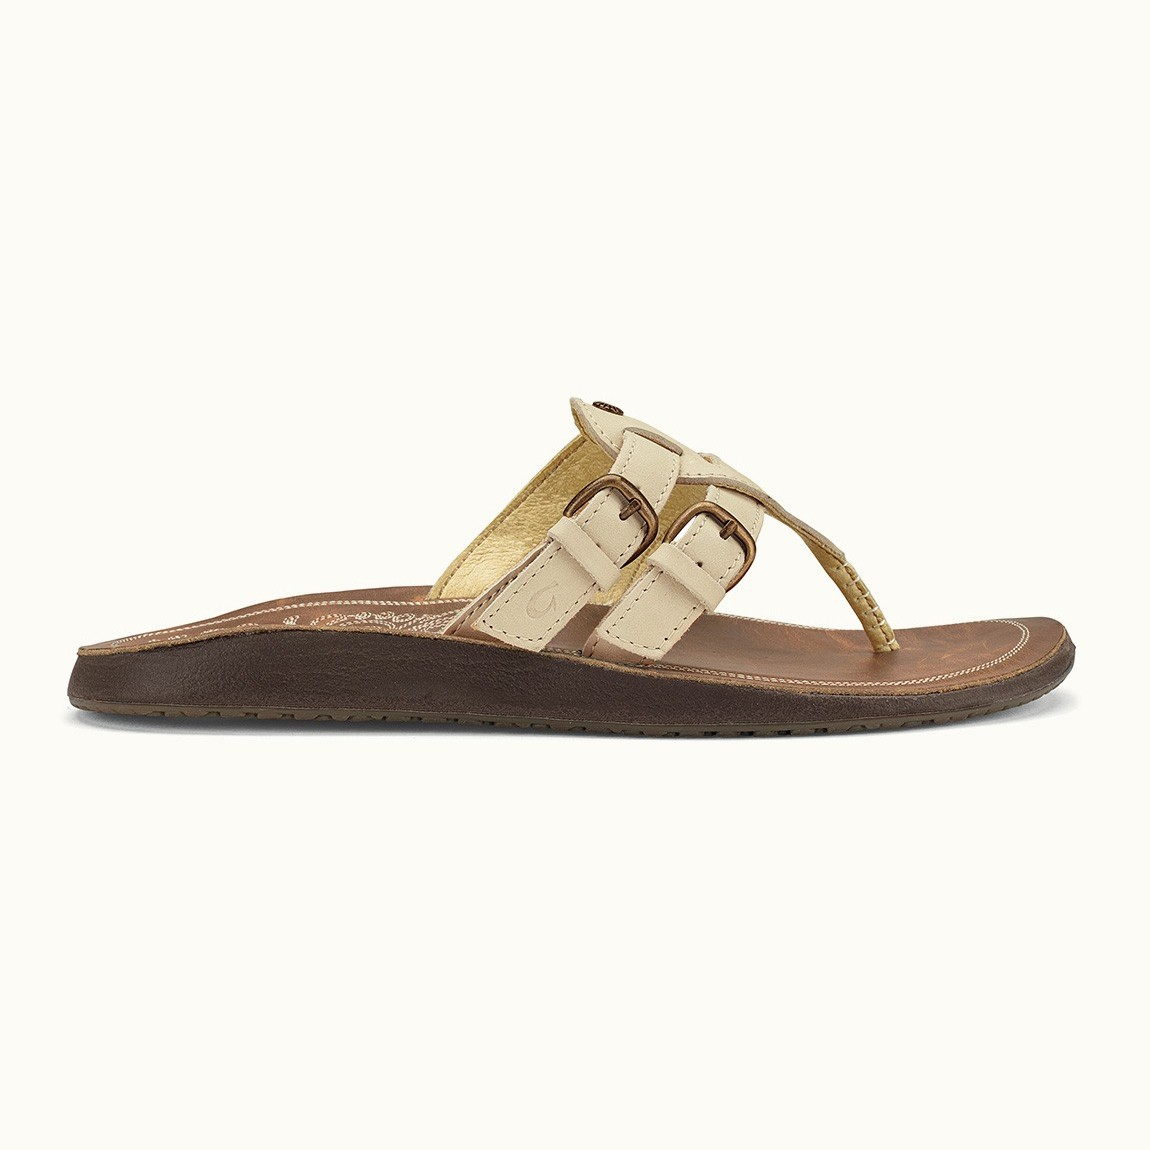 Olukai Honoka'a Leather Sandals (Women's)